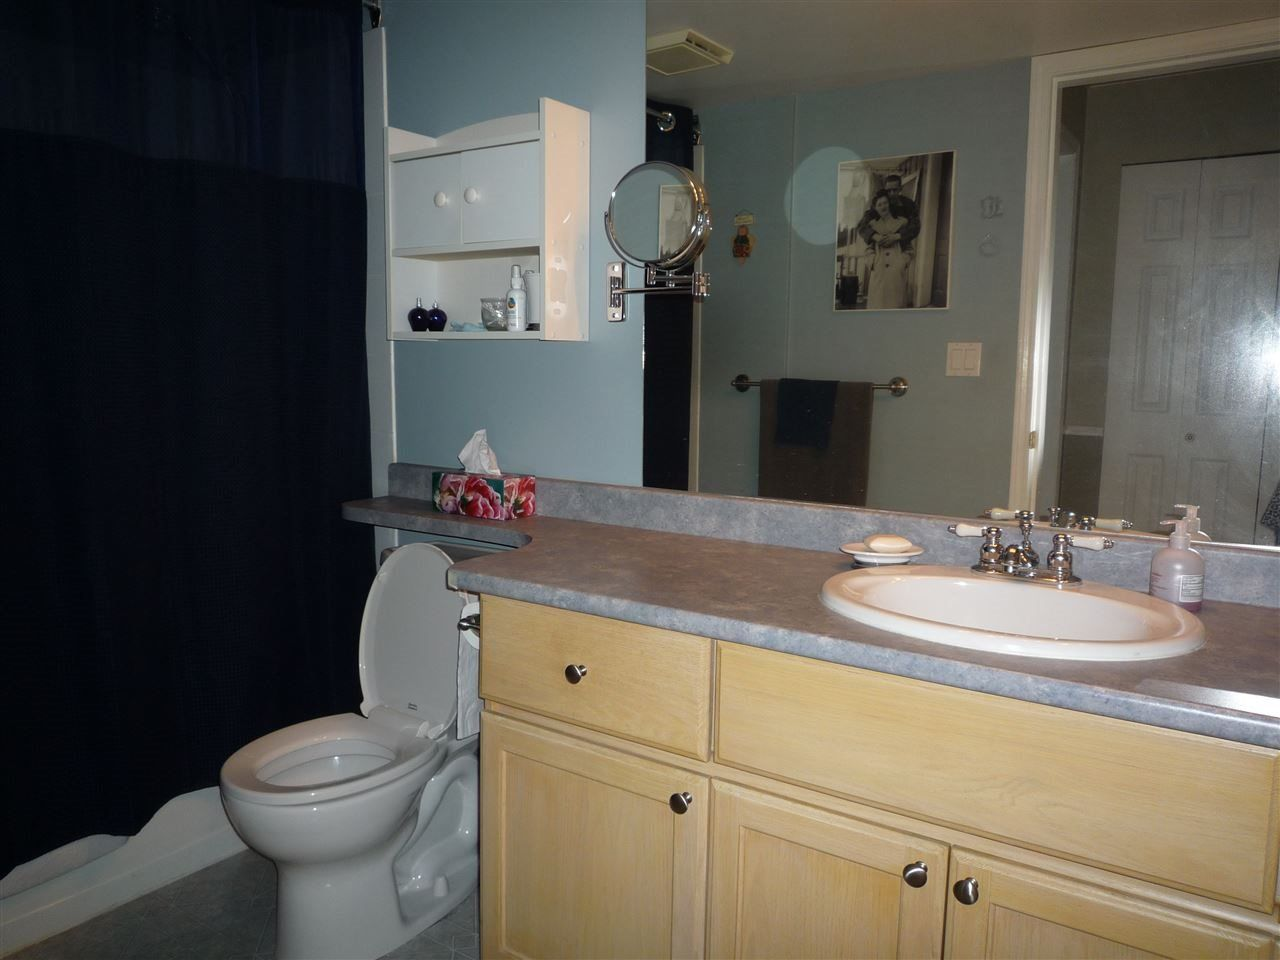 """Photo 10: Photos: 104 9400 COOK Street in Chilliwack: Chilliwack N Yale-Well Condo for sale in """"THE WELLINGTON"""" : MLS®# R2076679"""